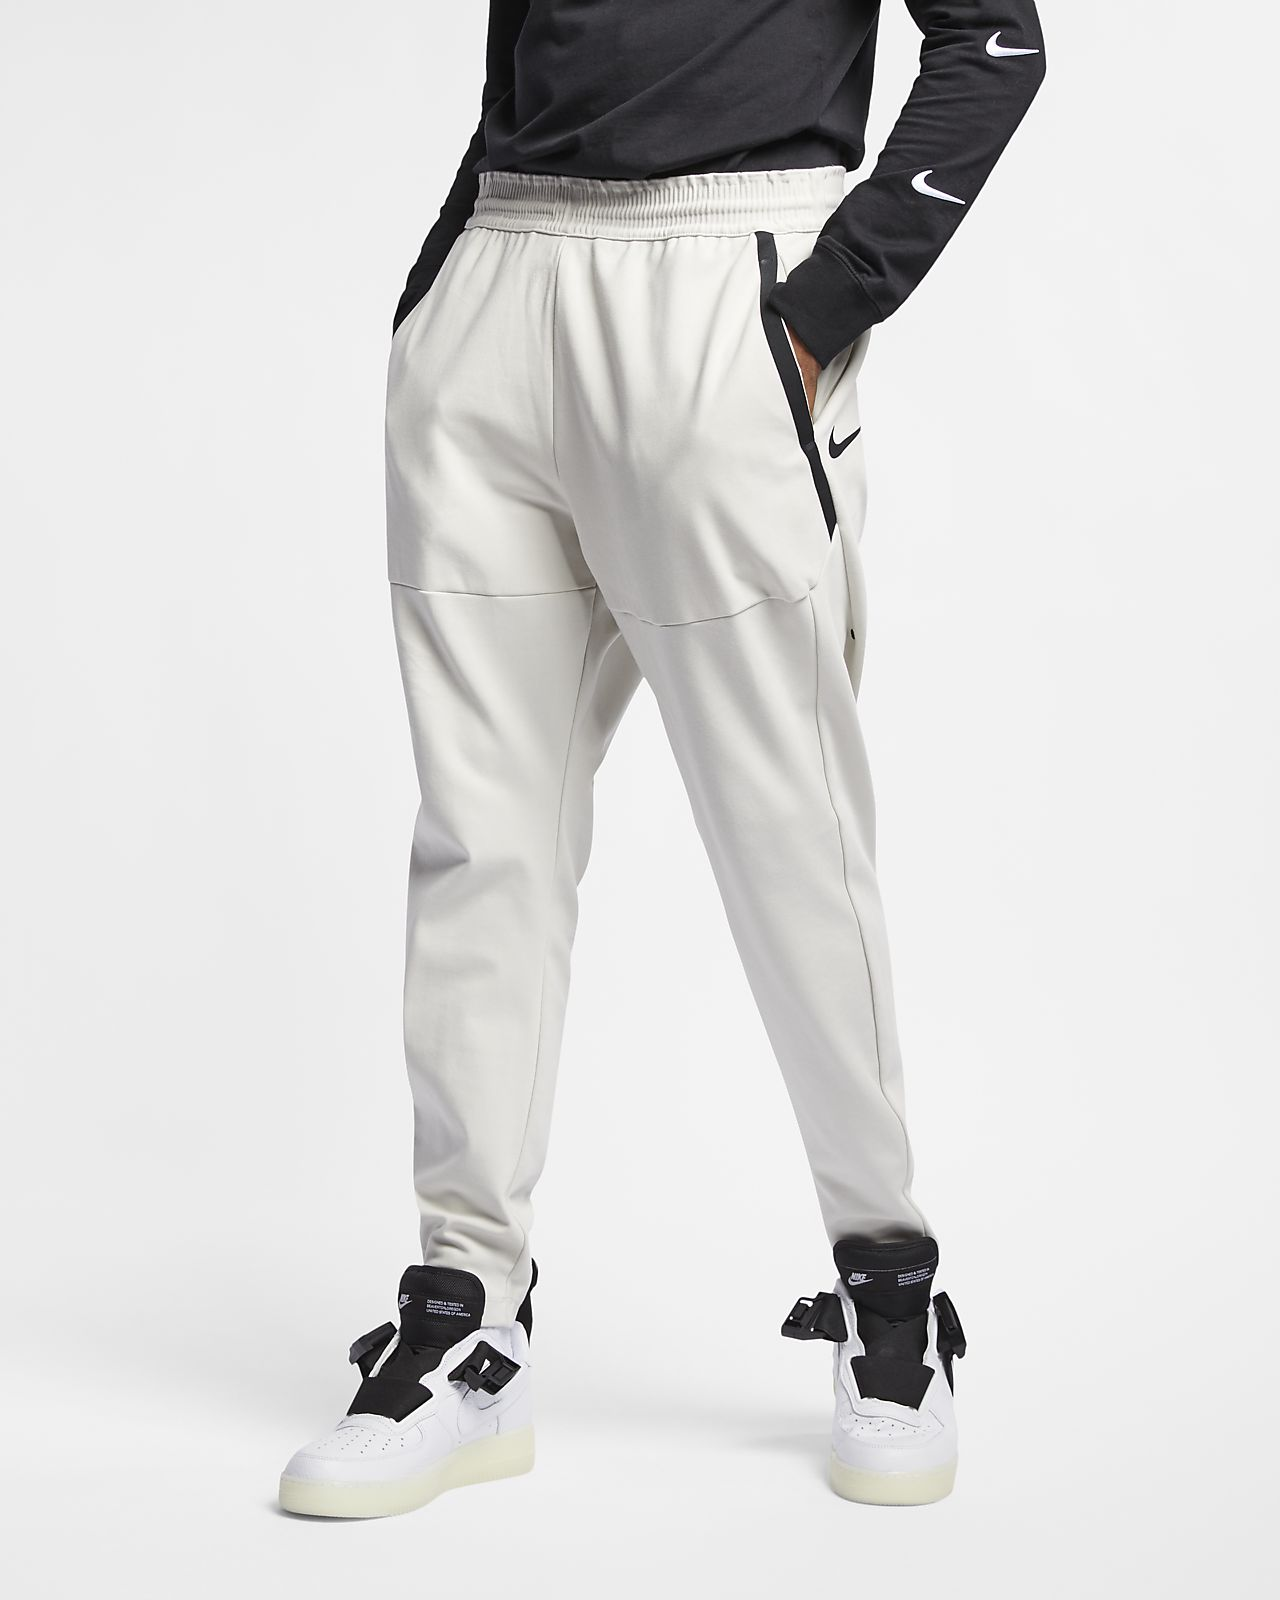 Nike Sportswear Tech Pack Men's Knit Trousers